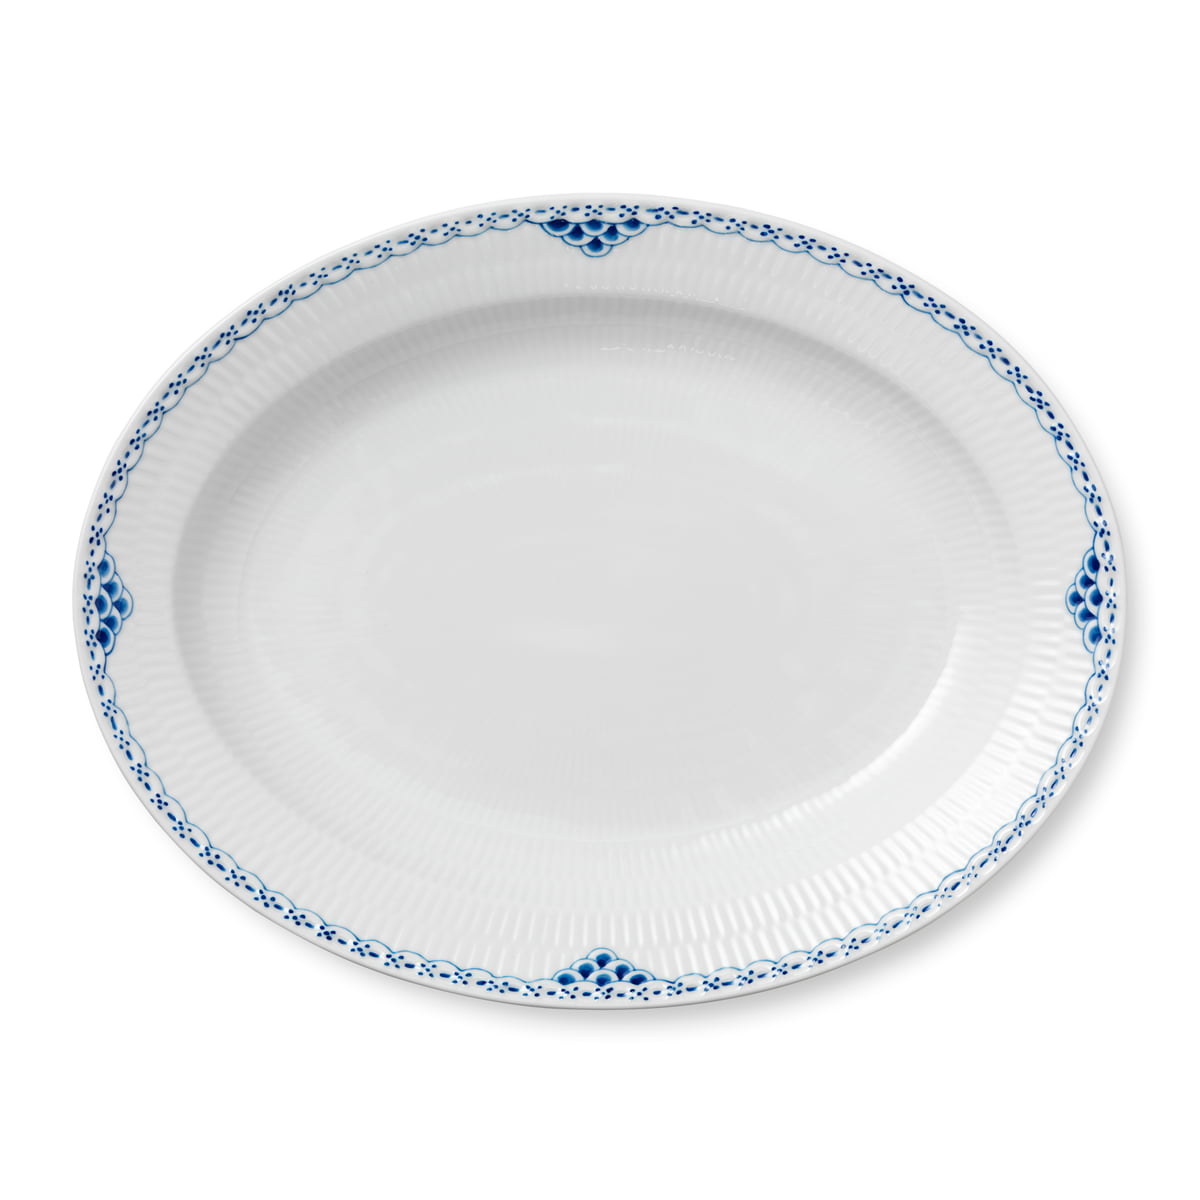 Royal Copenhagen Geschirr Royal Copenhagen Prinzess Servierplatte Oval 36 5 Cm